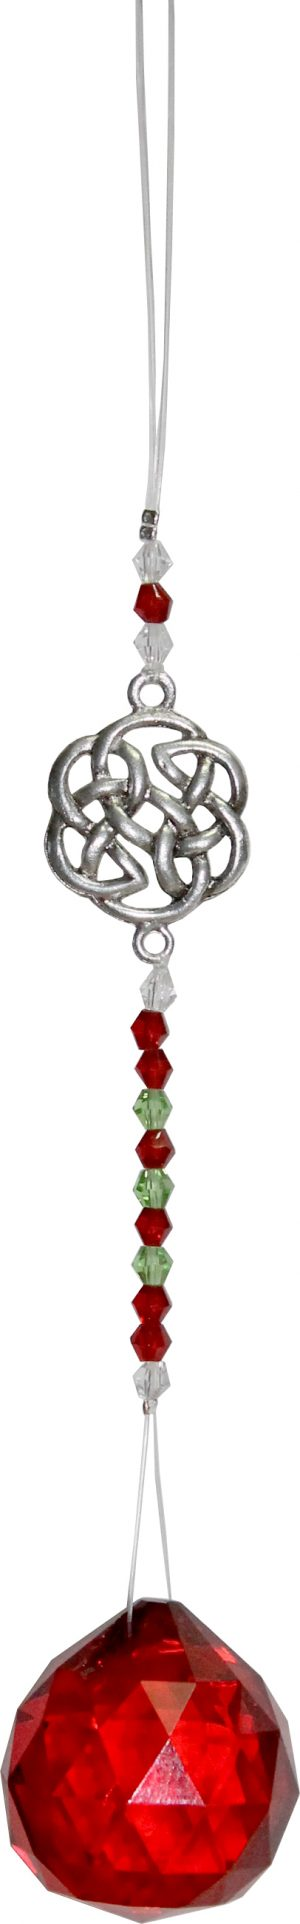 Suspended Crystal Cut Glass with Celtic Button - Red